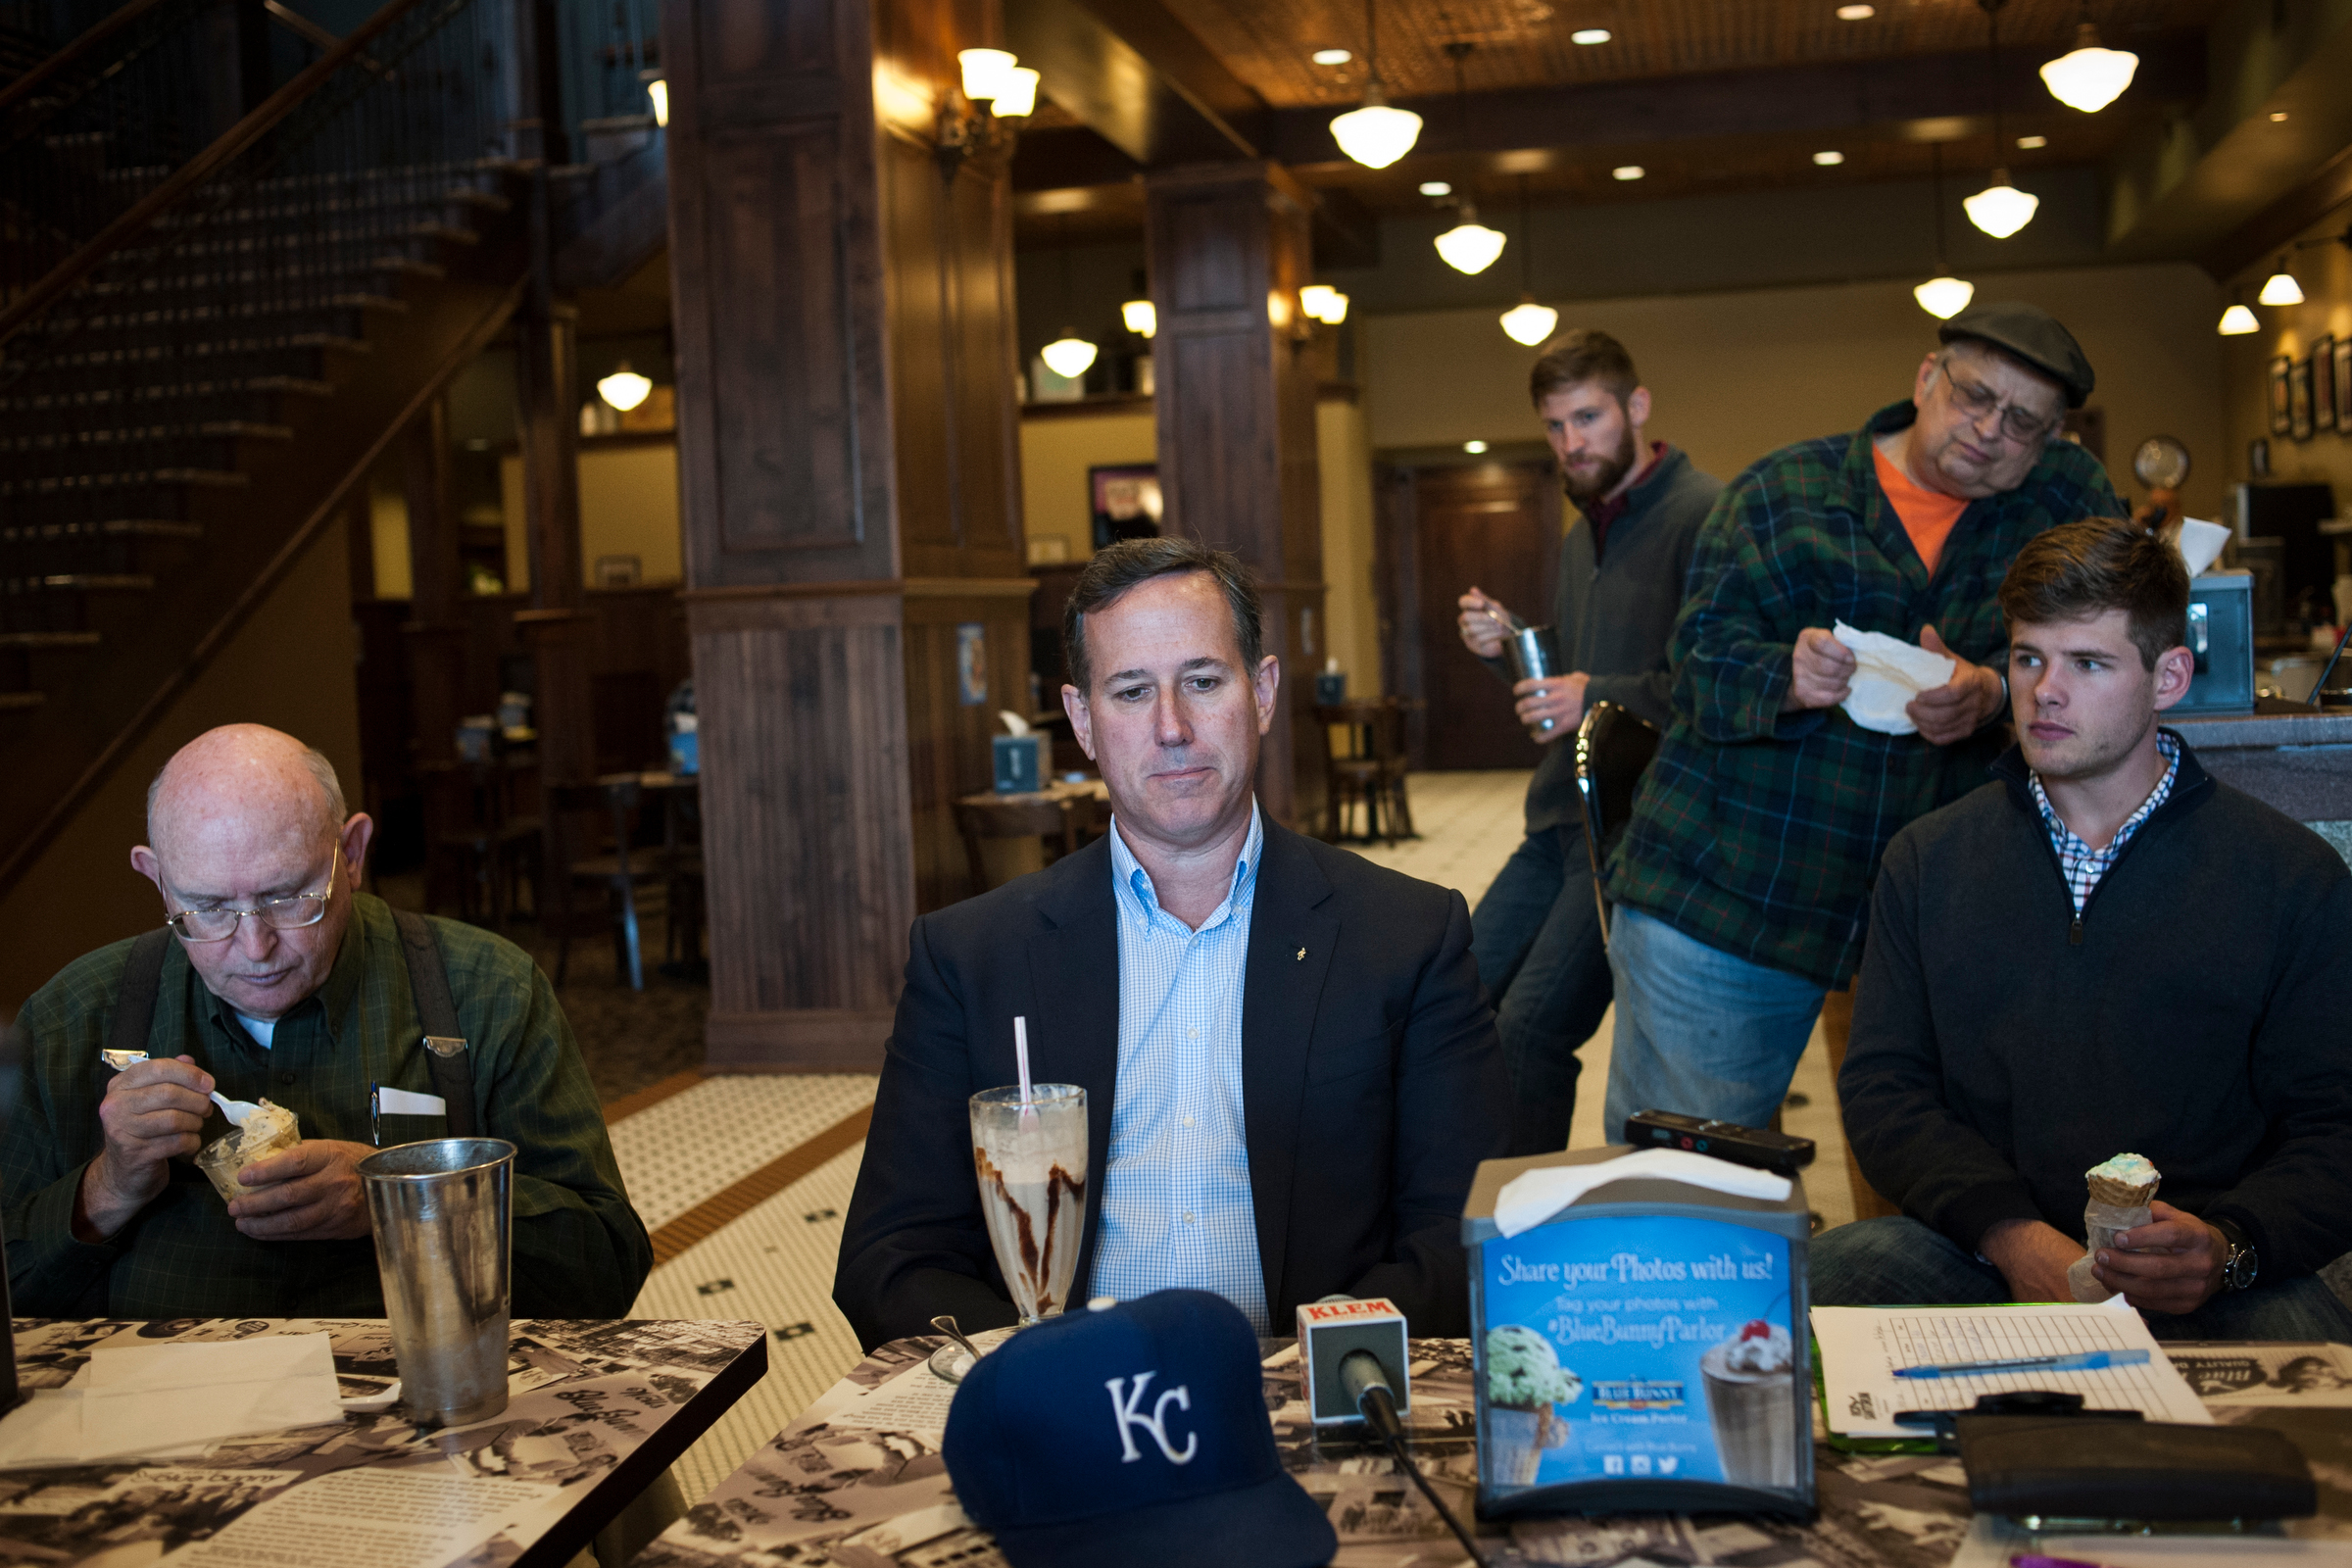 Republican presidential candidate Rick Santorum listens to a question at a town hall at the Blue Bunny Ice Cream Parlor in Le Mars, Iowa.